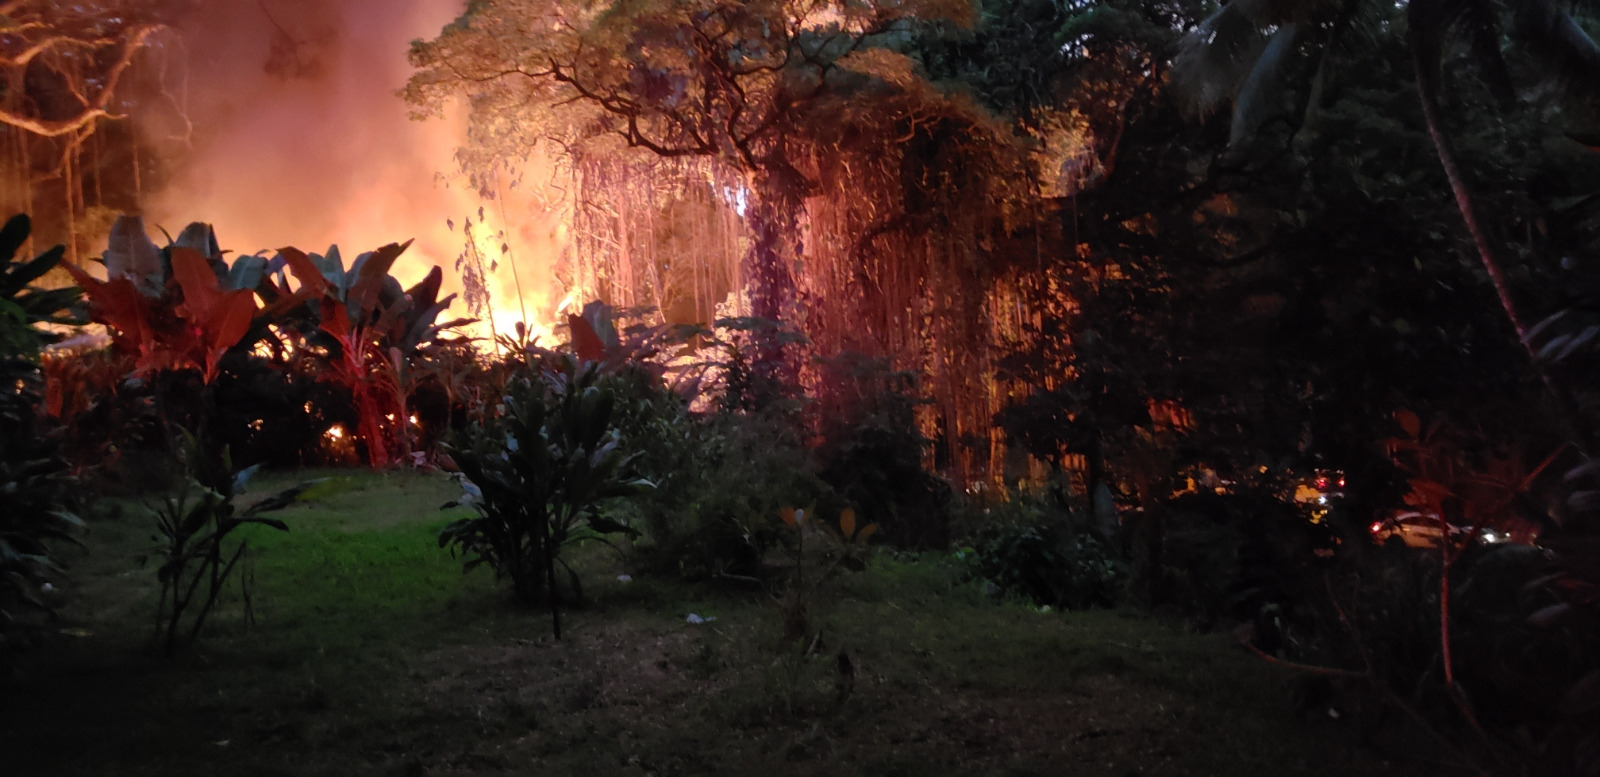 Honokōhau Fire Burns Makeshift Structure, Firefighter Treated & Released